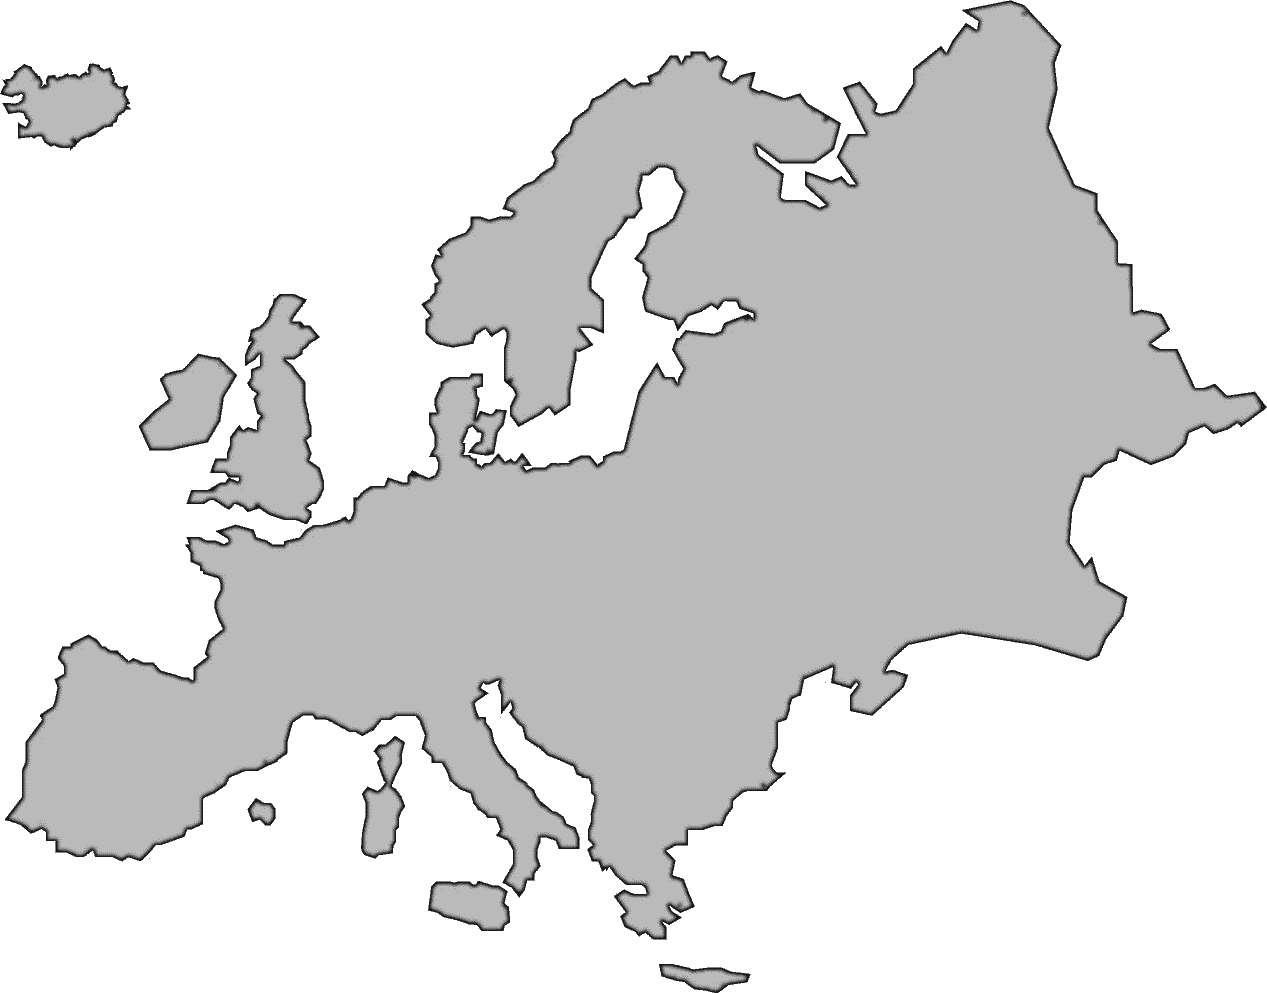 Free download clip art. Europe clipart